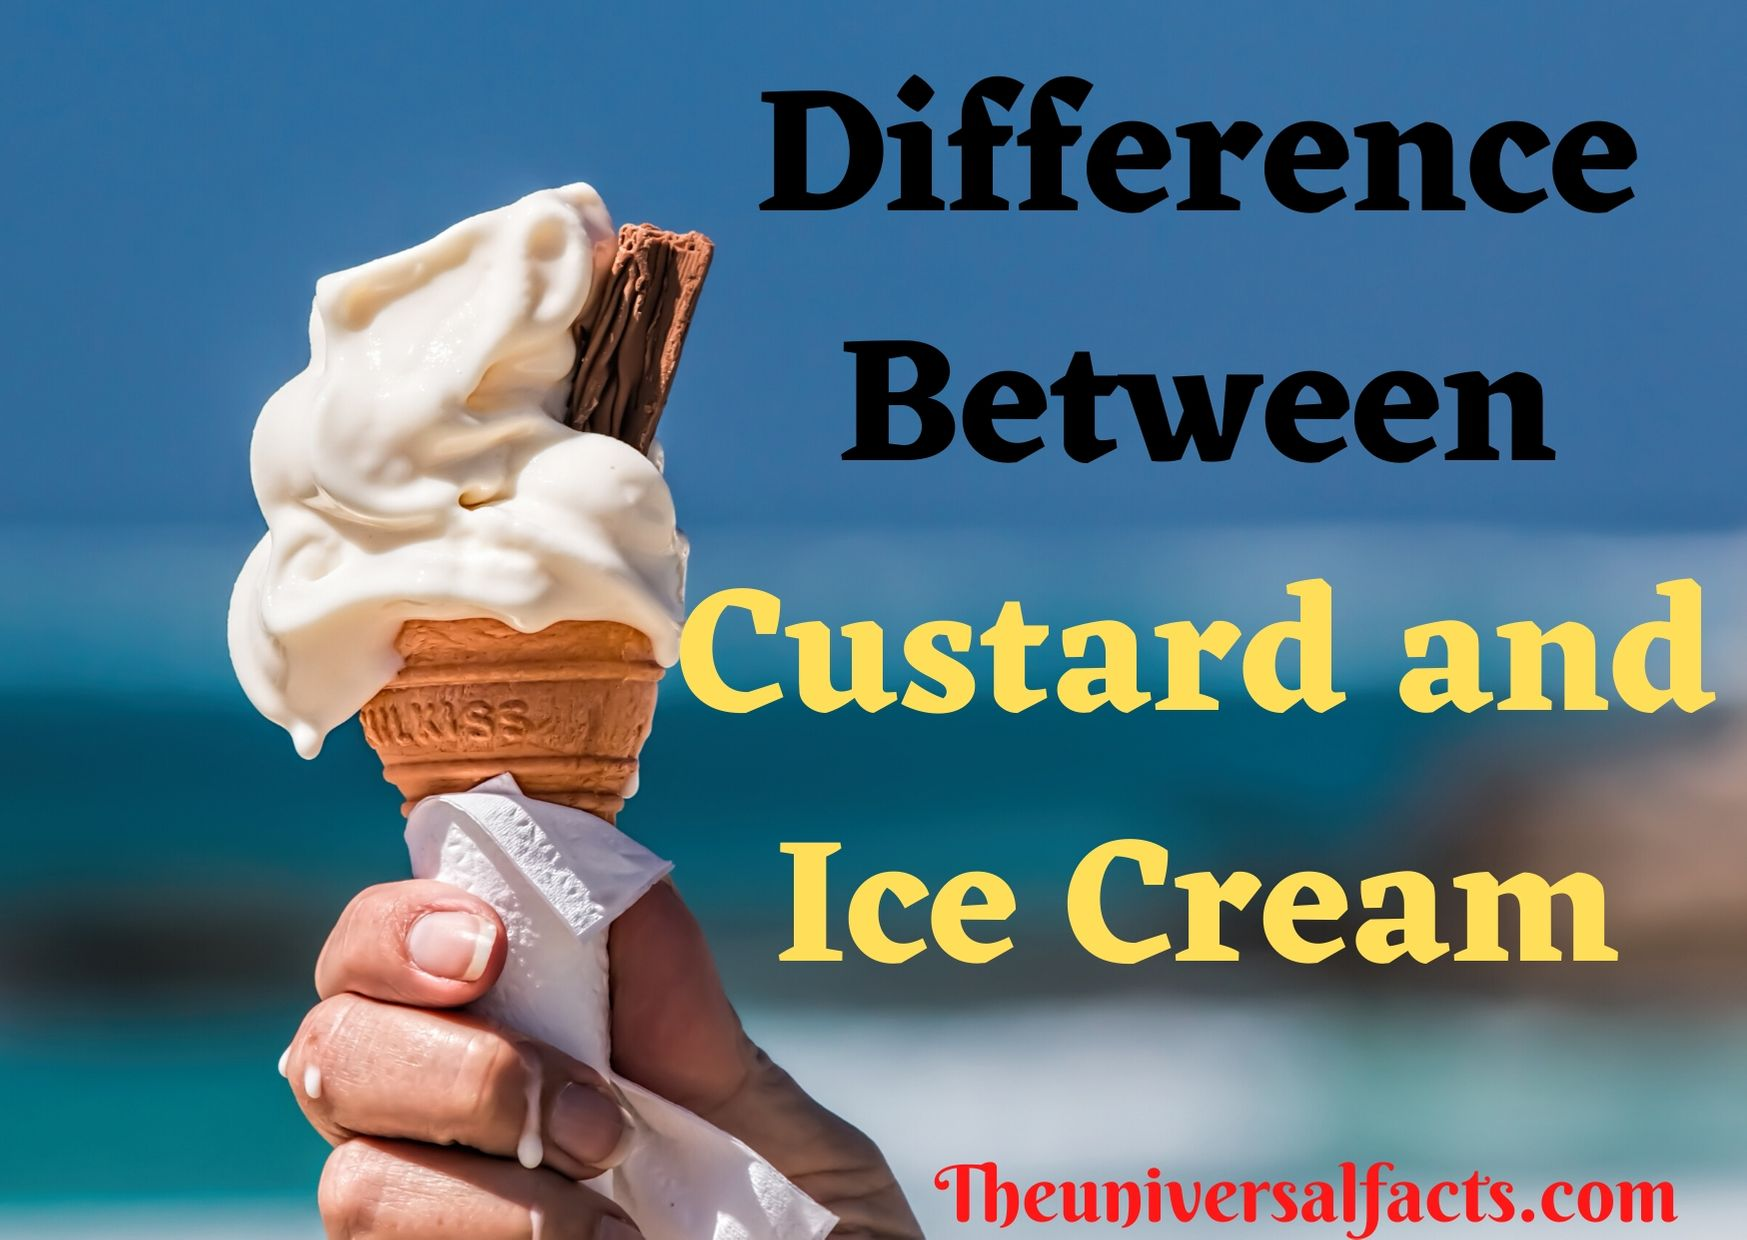 Difference Between Custard and Ice Cream